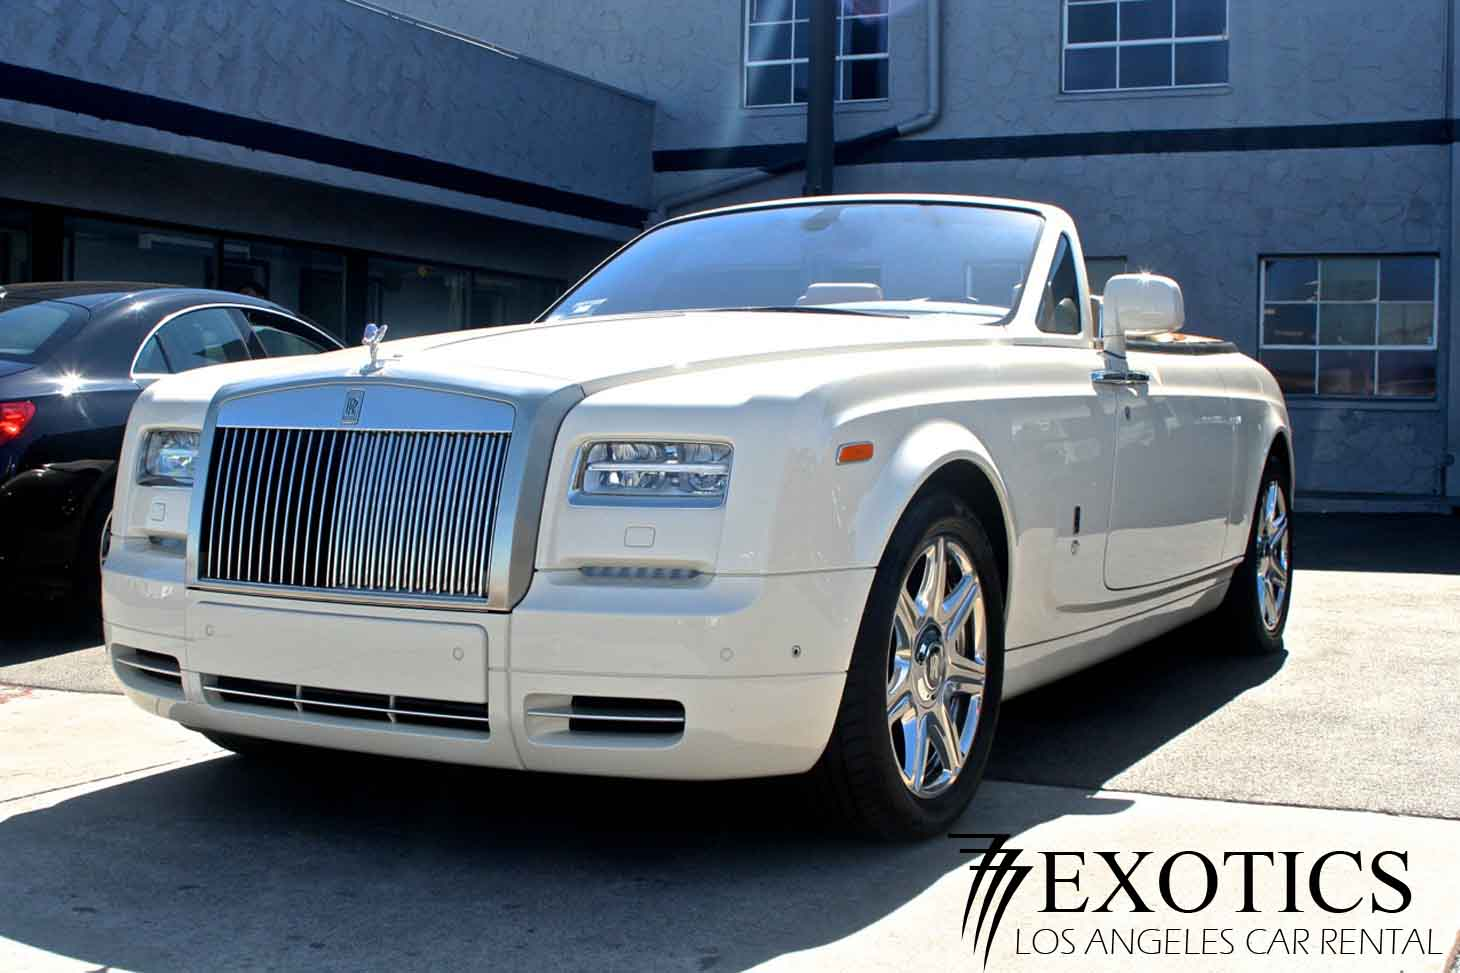 Luxury Car Rental Los Angeles 777 Exotics Cheap Luxury For Rent